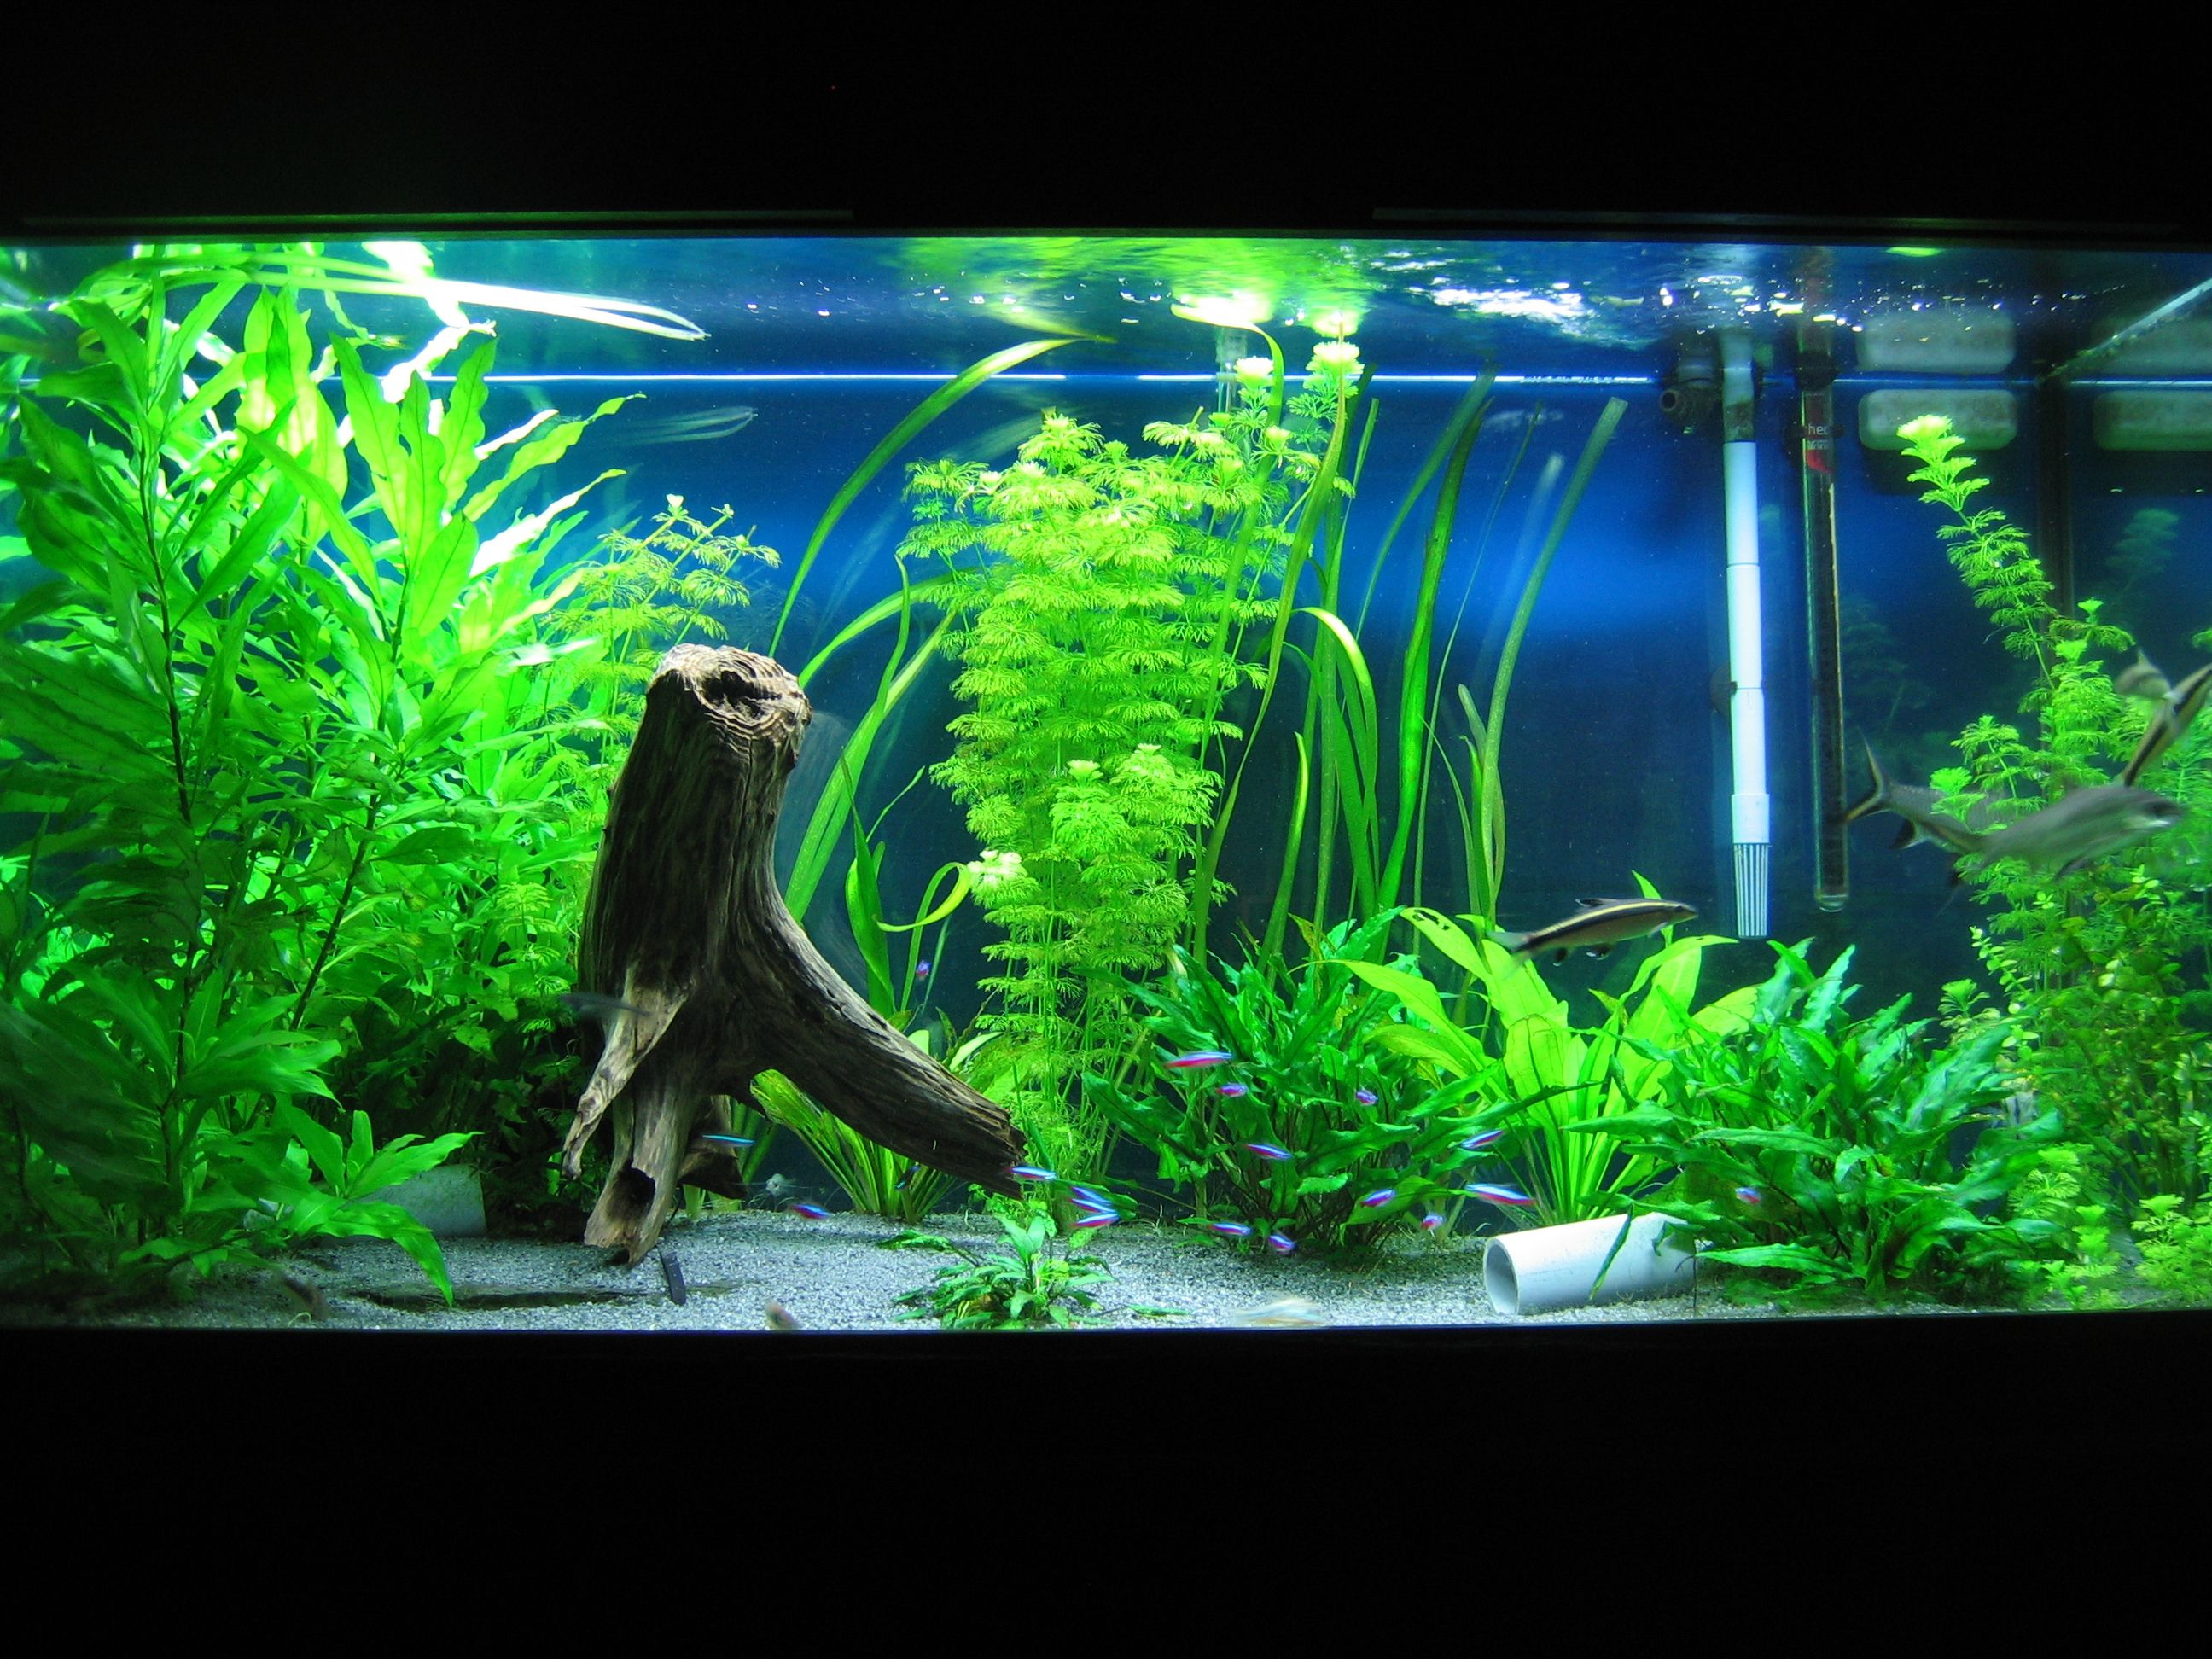 Fish aquarium in brisbane - Fish Tank Decor Ideas Download Image Freshwater Aquarium Fish Brisbane